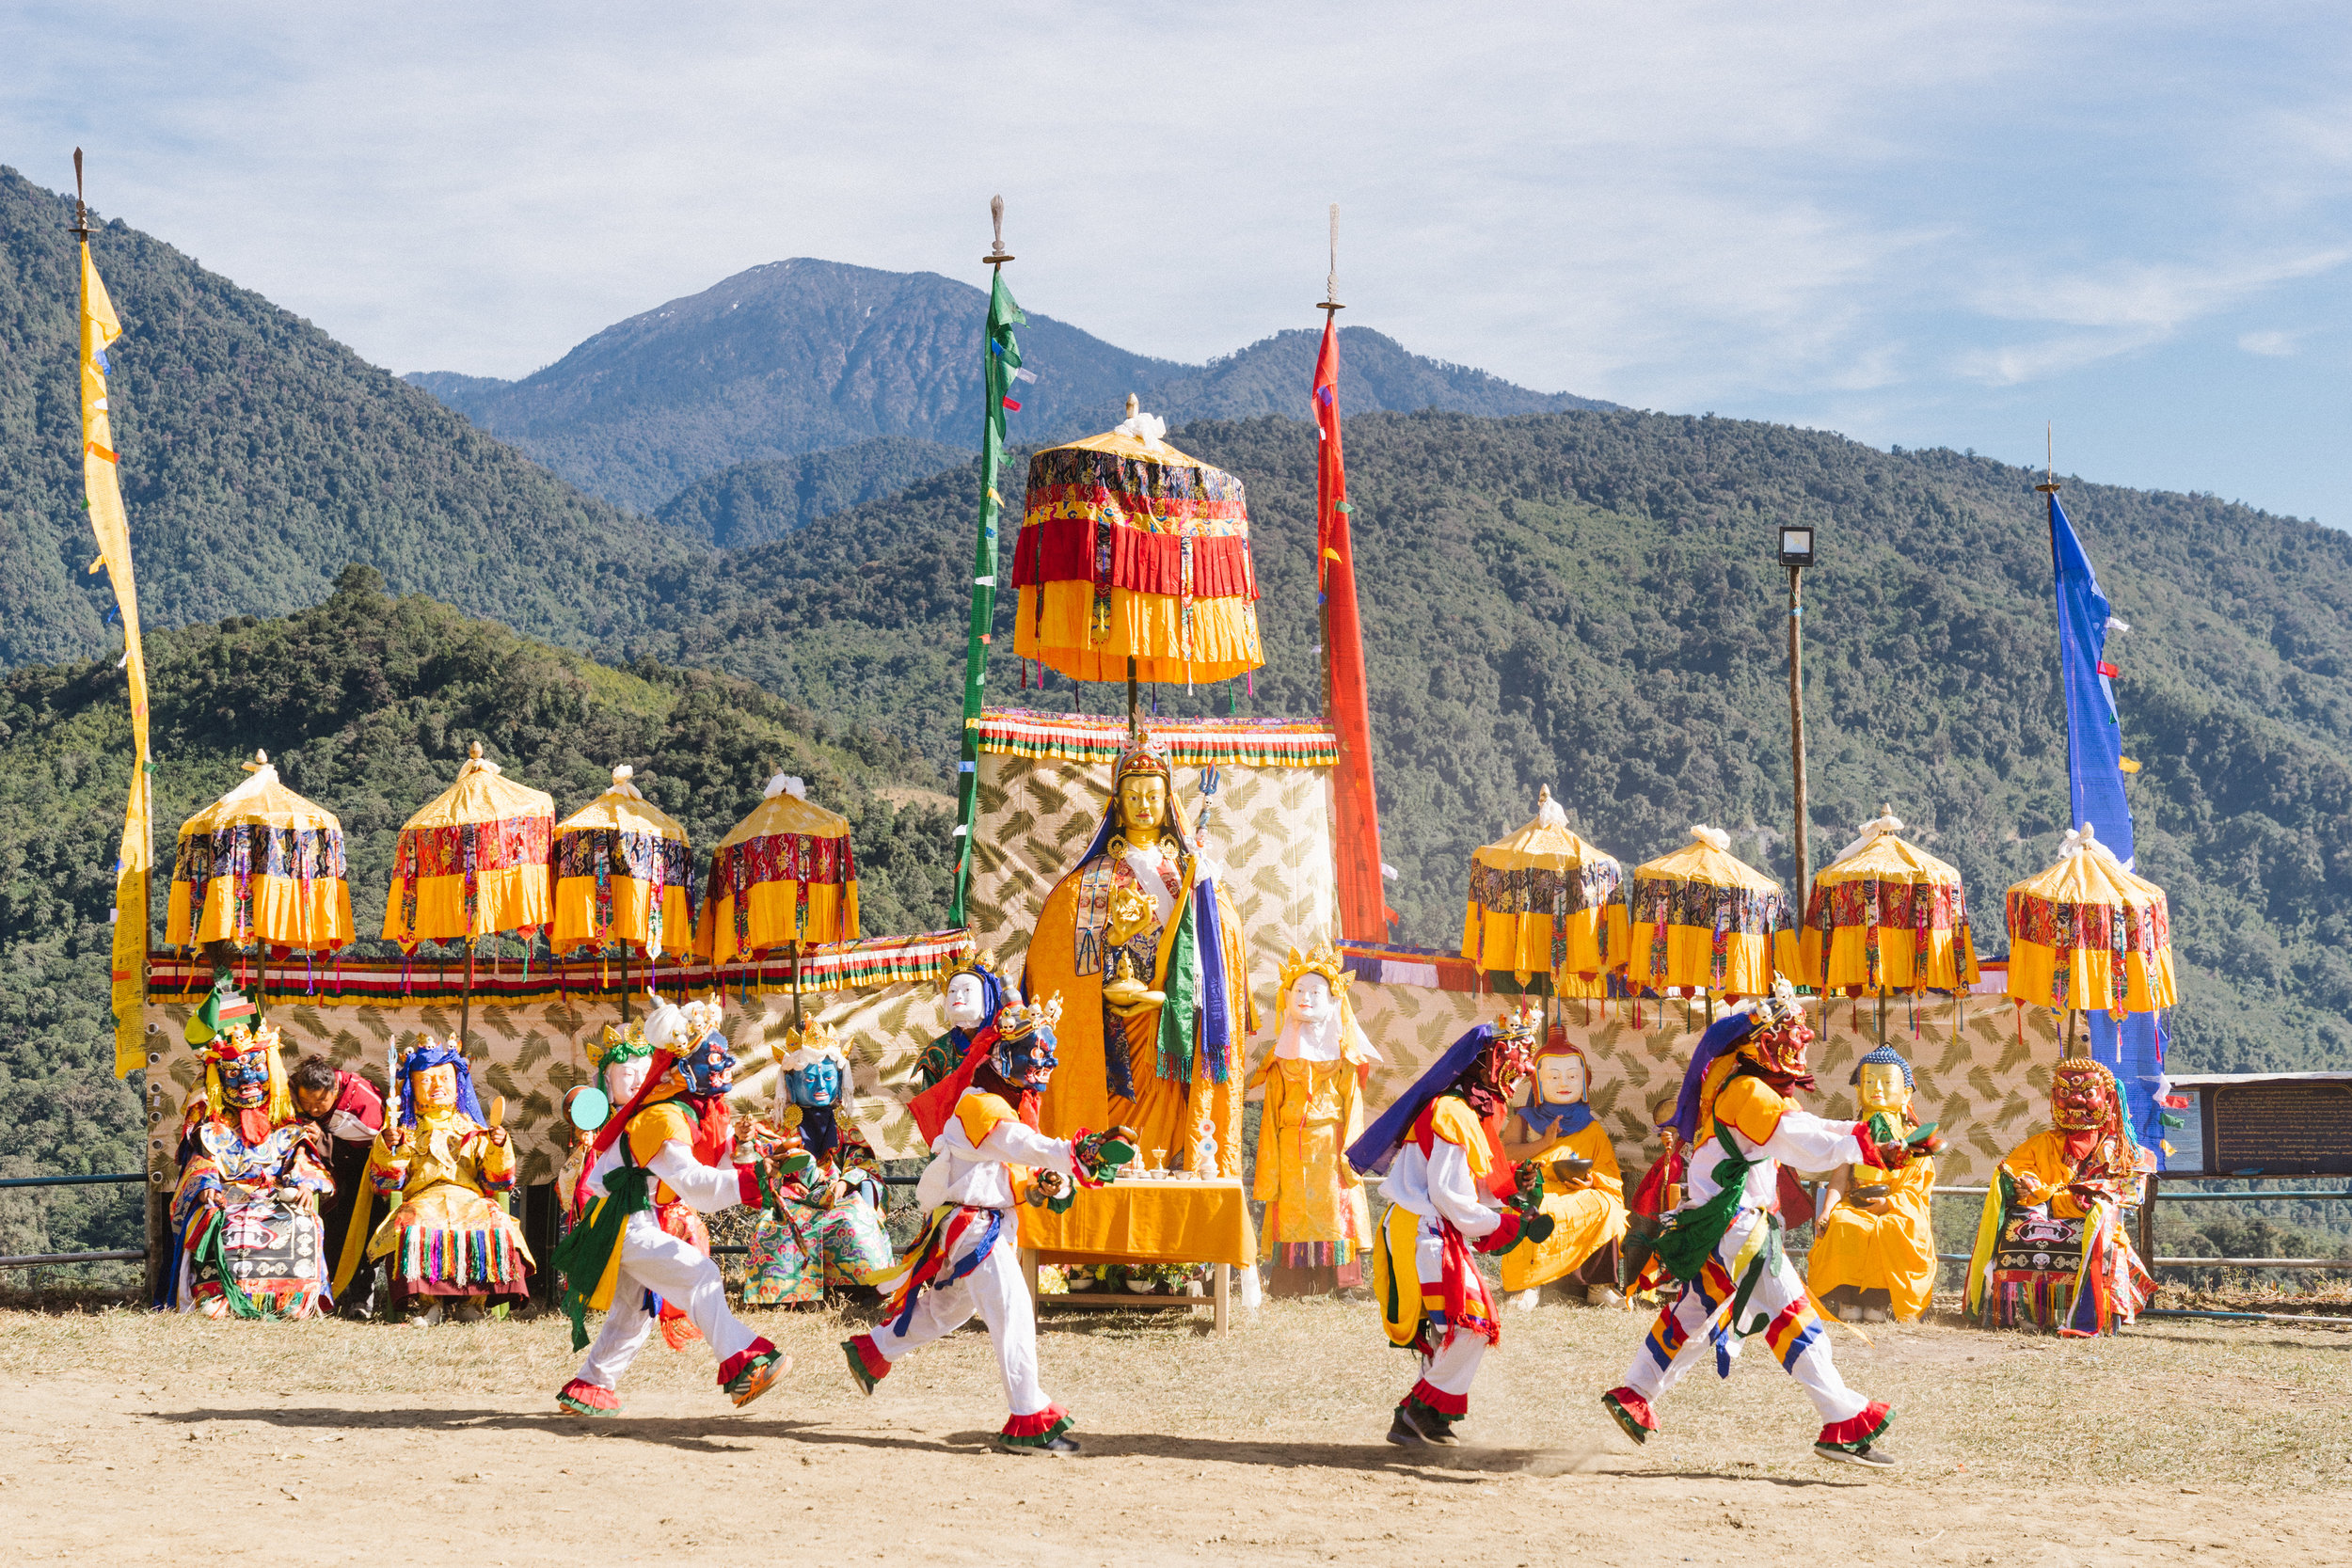 Every year on the 10th day of 11th month of the Tibetan Calendar, sacred dances of the eight manifestations of Guru Rinpoche from the Rigdzin Dupa Sadhana practice are performed at Deden Tashi Choeling.